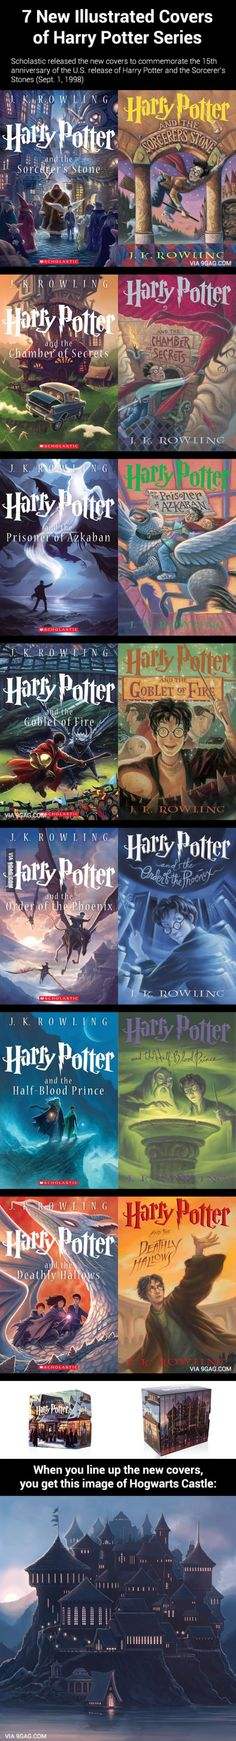 7 New Illustrated Covers of Harry Potter Series...  Mo money